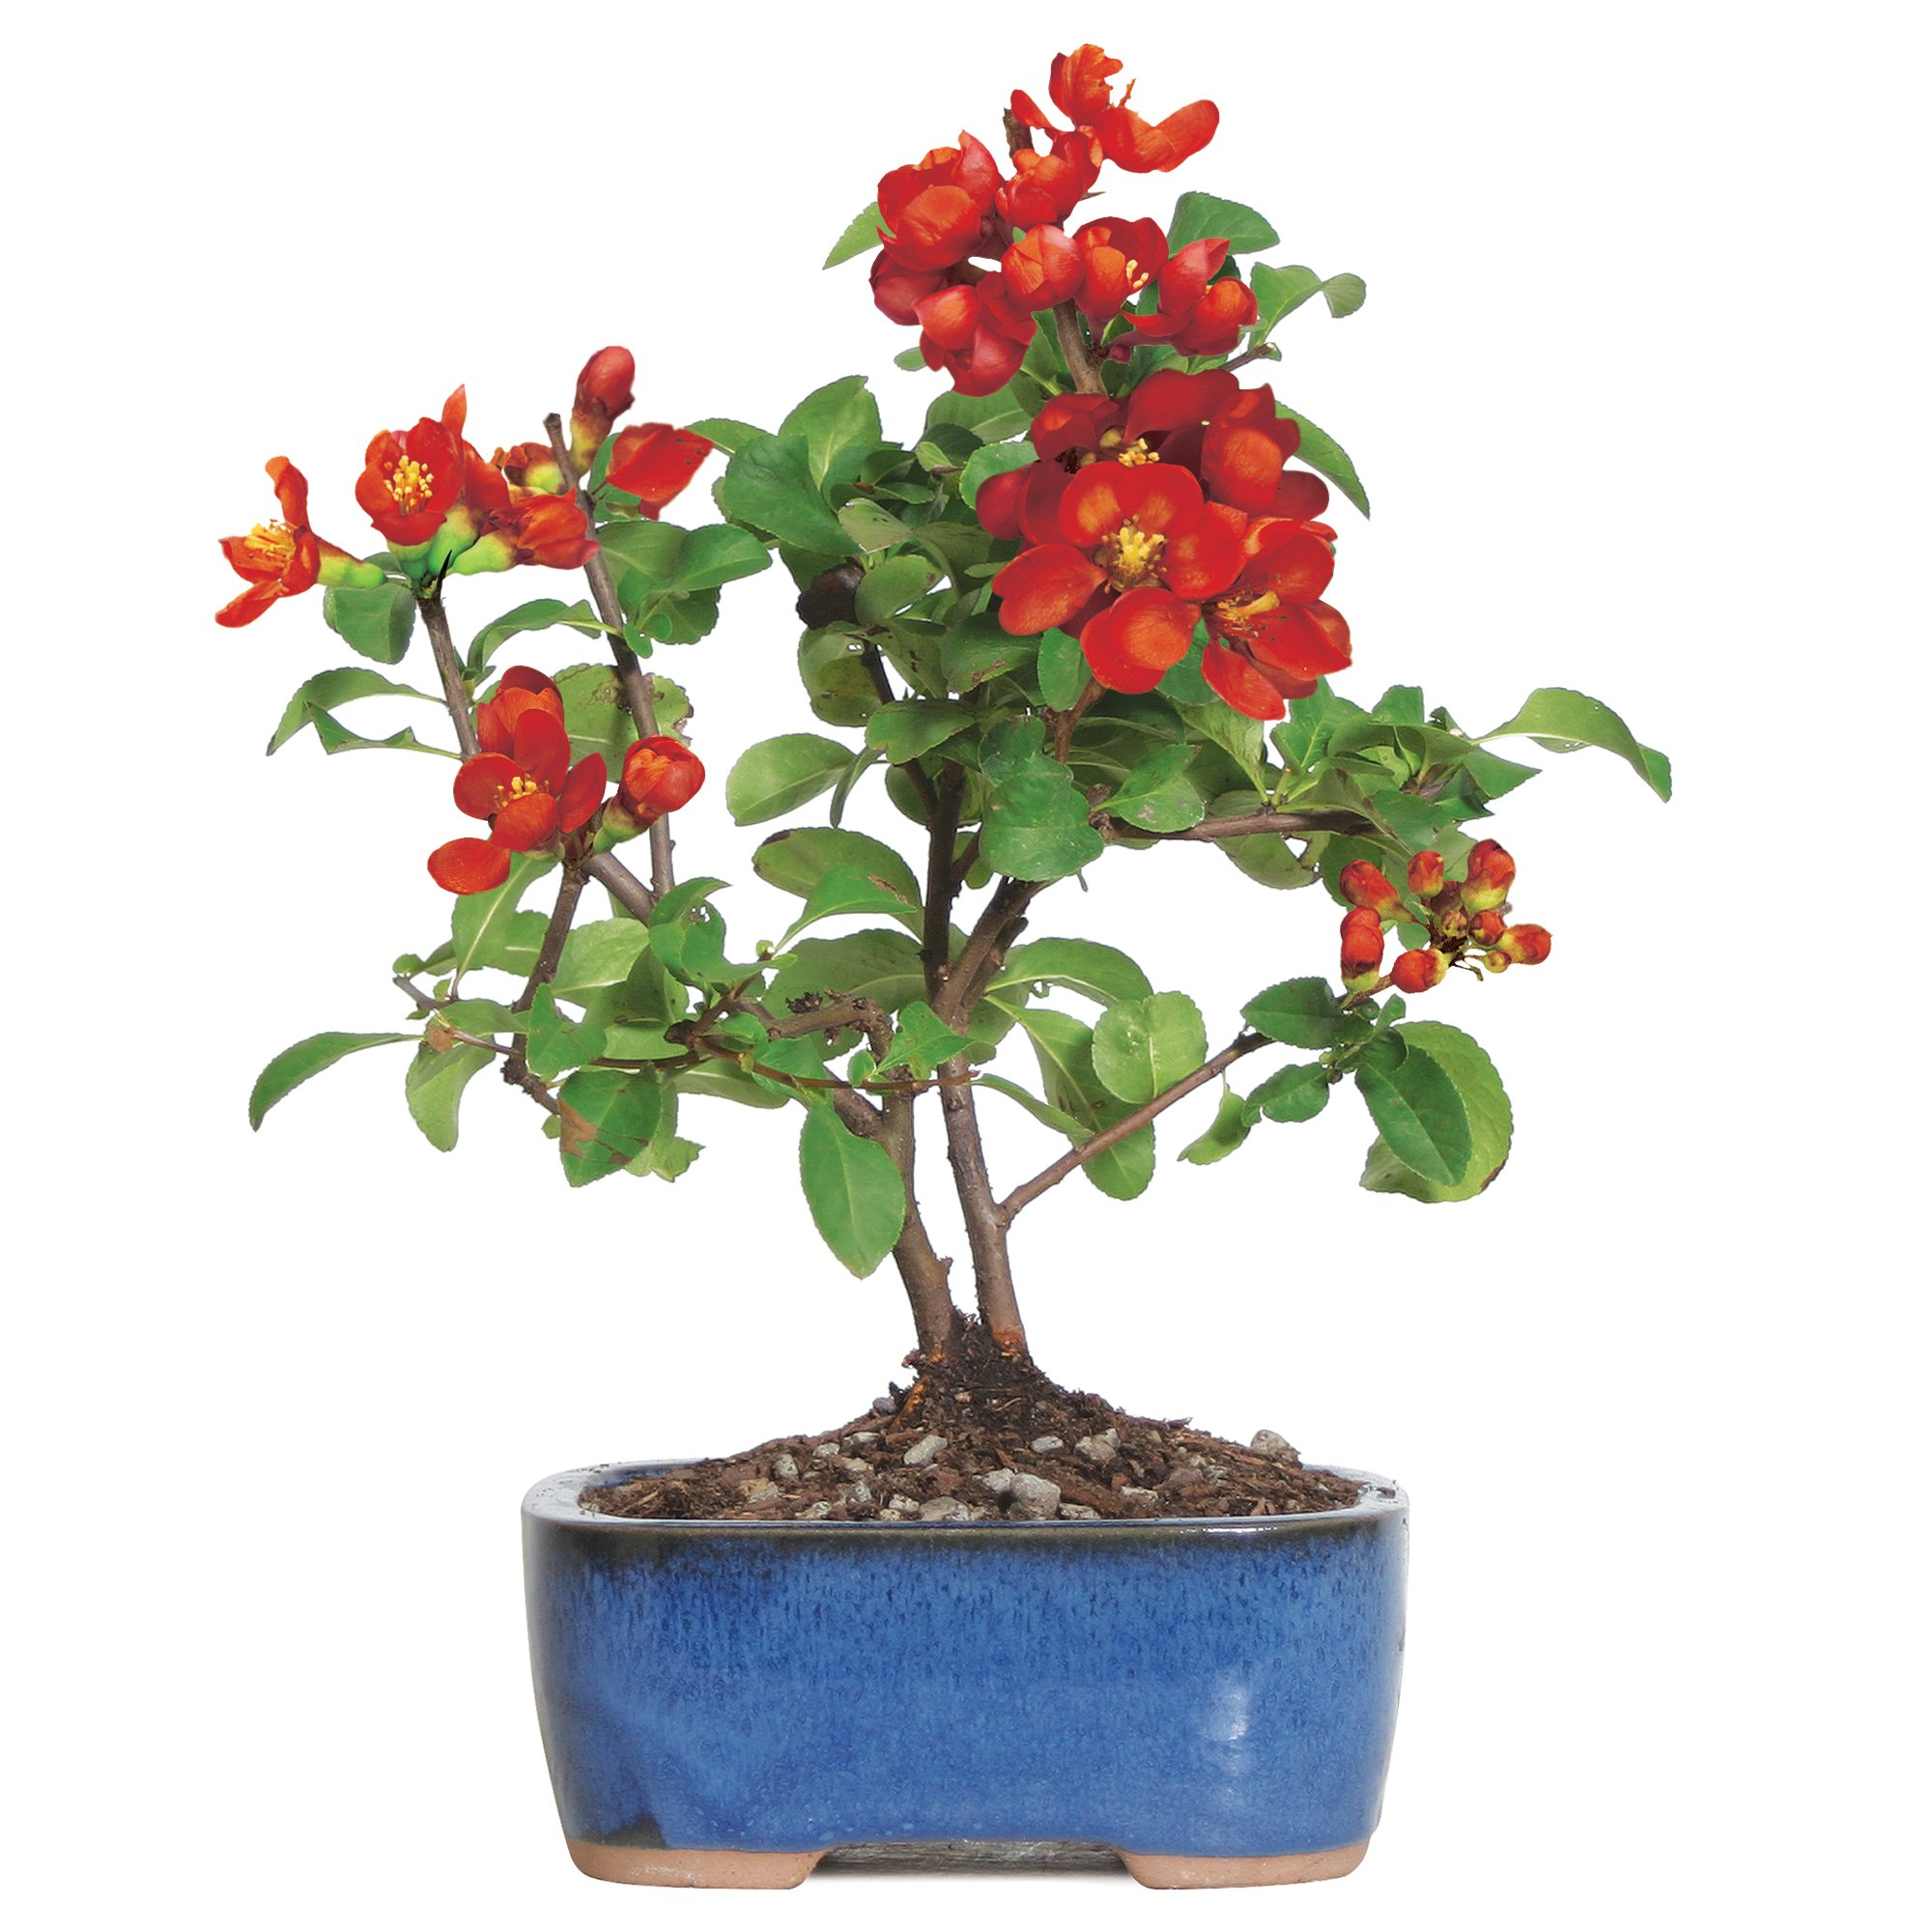 Brussel's Live Japanese Red Quince Outdoor Bonsai Tree - 3 Years Old; 10'' to 12'' Tall with Decorative Container by Brussel's Bonsai (Image #1)